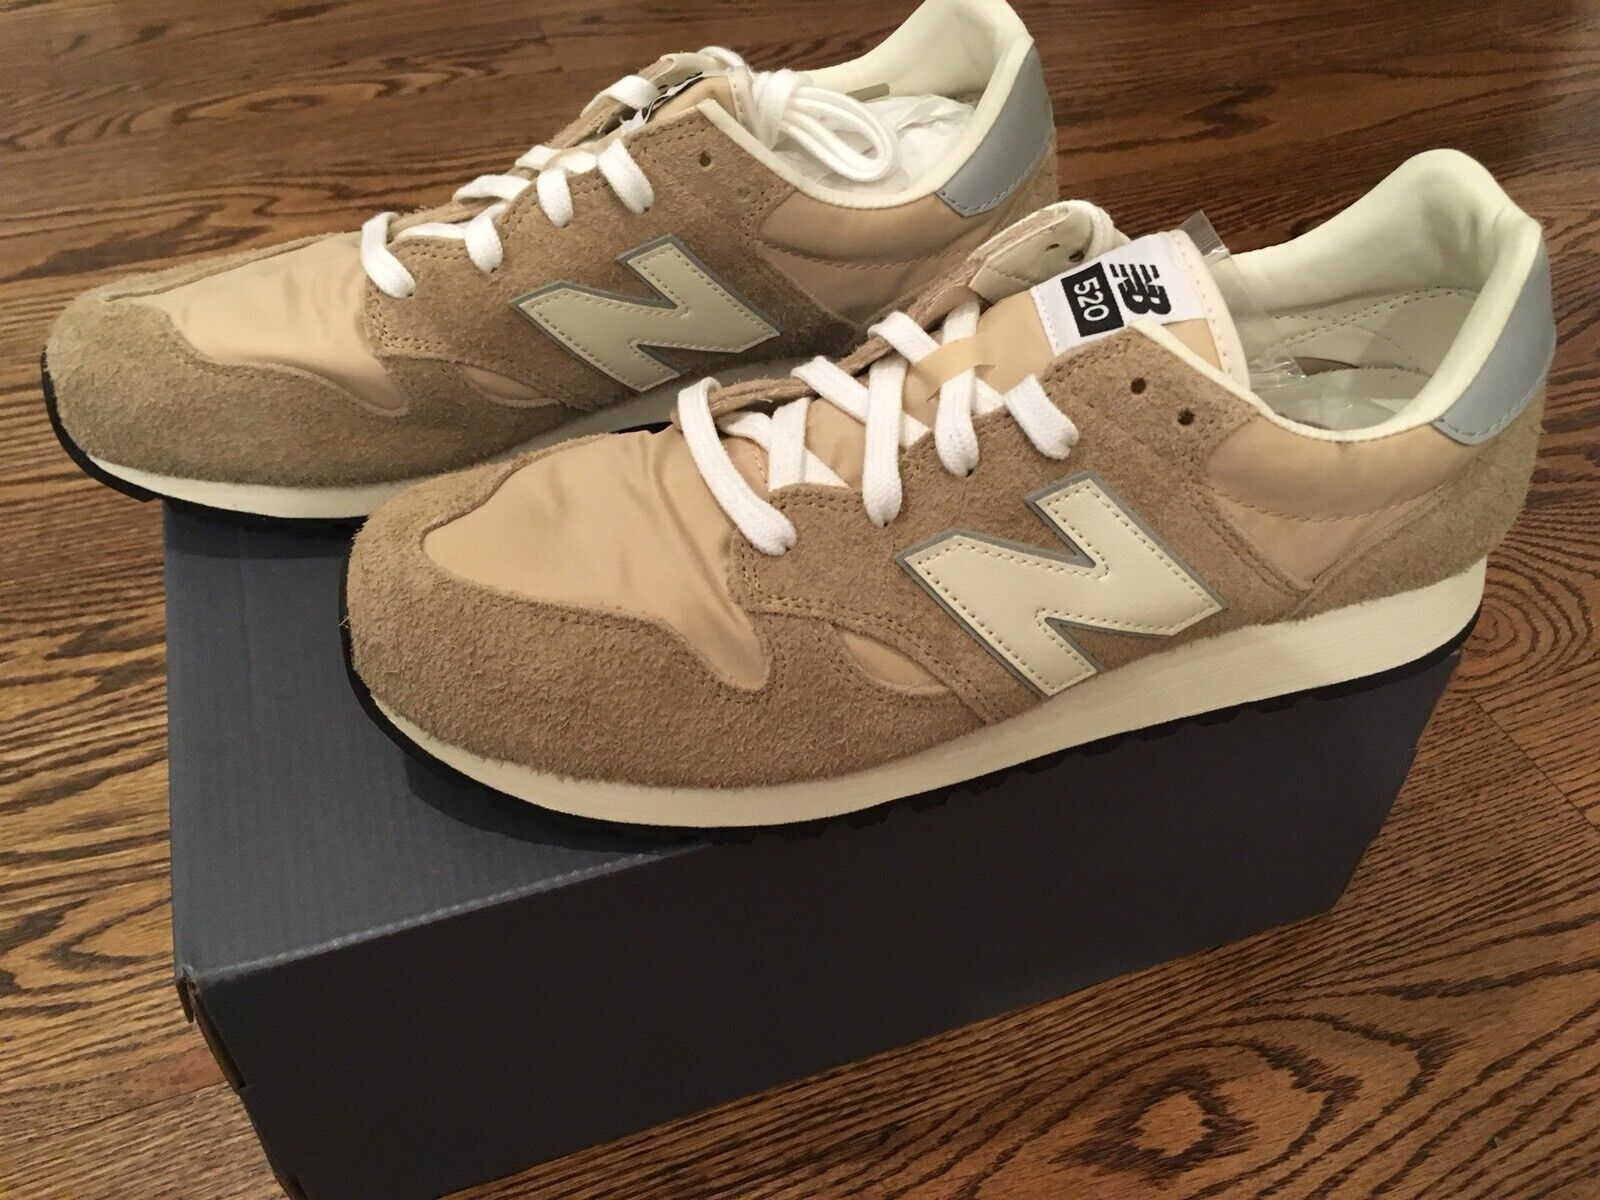 New Balance x J. Crew Classic 520 Sneakers shoes in Hairy Suede Sz 11.5 NIB